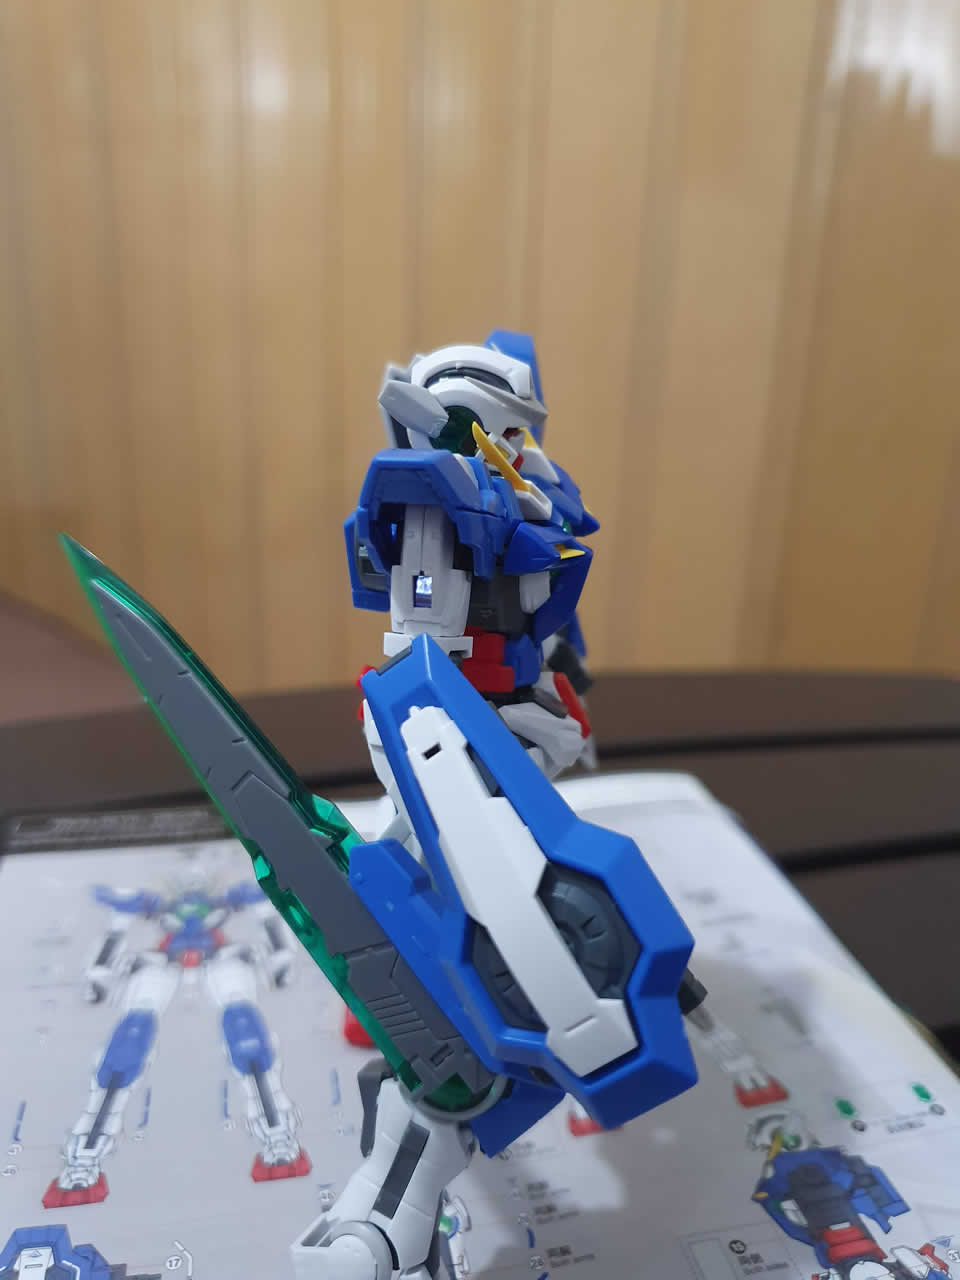 Exia Repair RG equipping the GN Shield